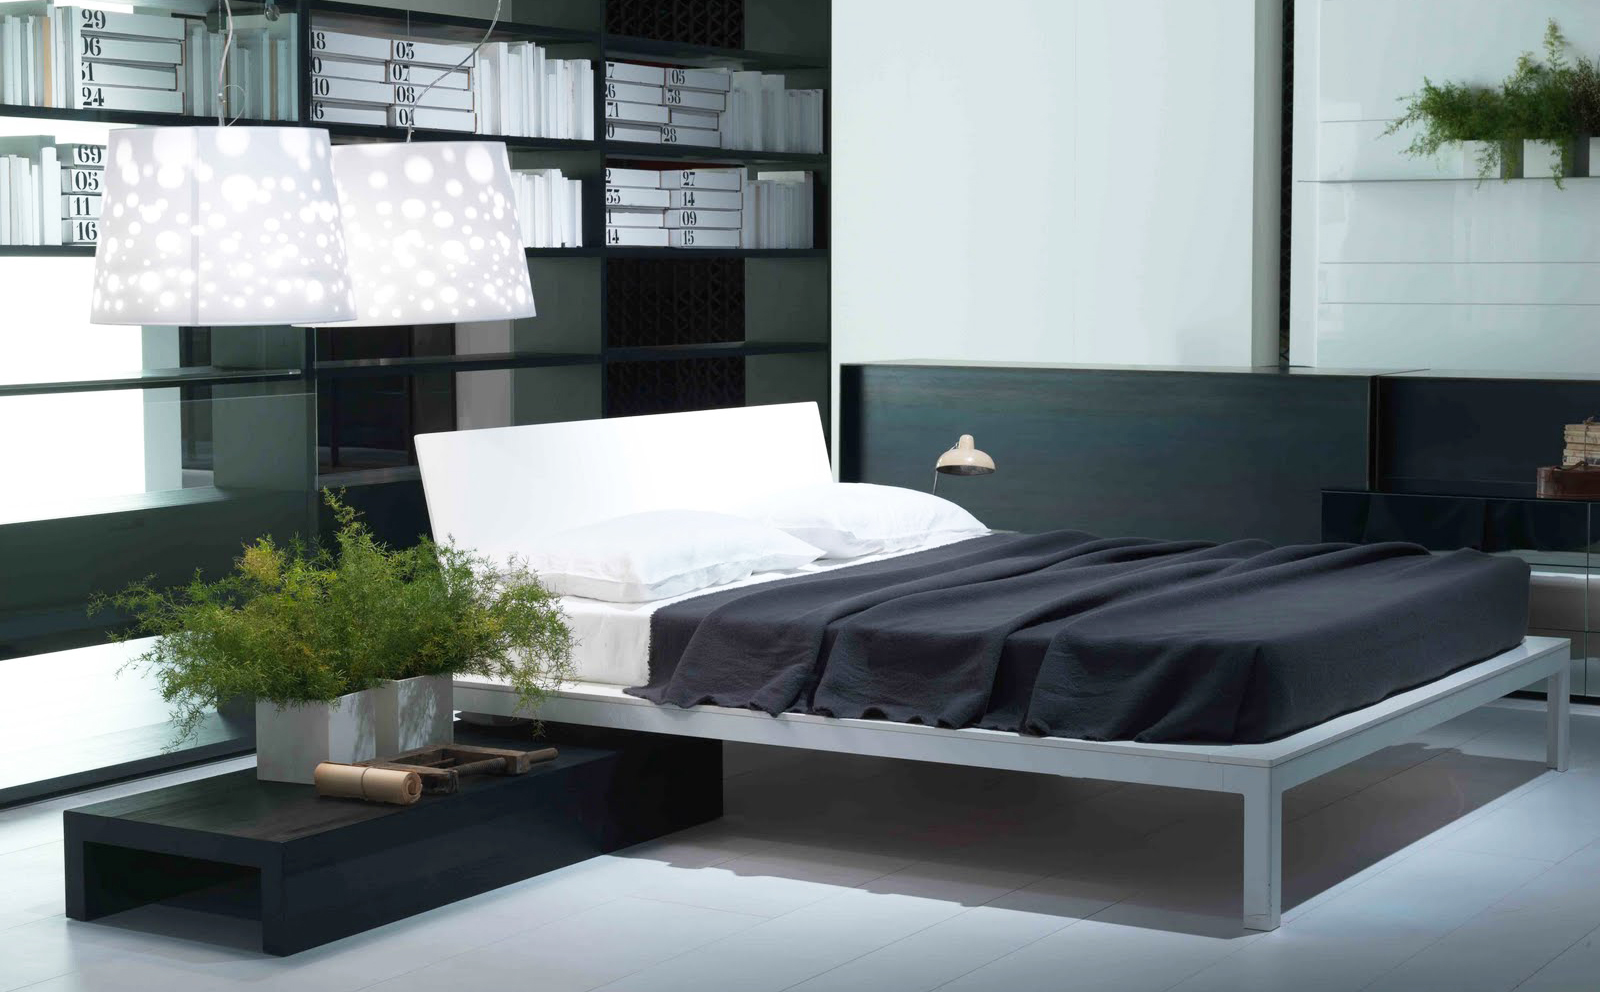 furniture-for-modern-house-in-black-and-white-bedrooom-furniture-decorations-ideas-with-queen-size-bed-modern-furniture